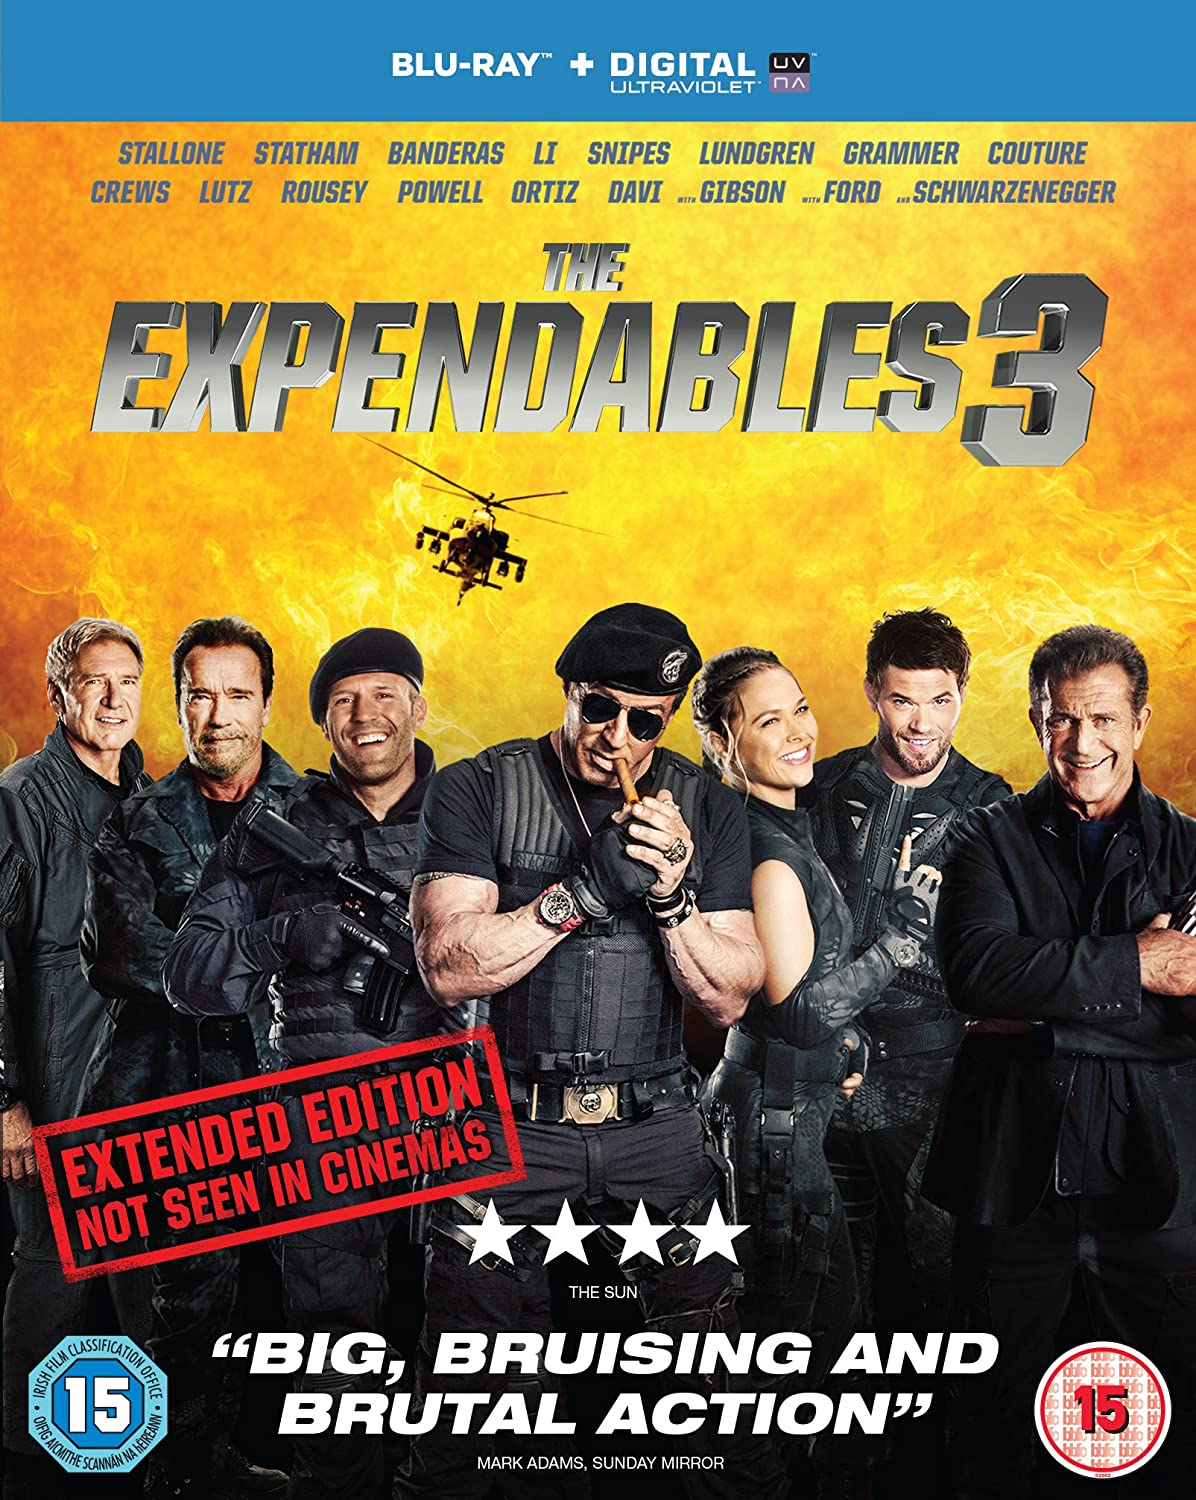 The Expendables 3 December 8th 2014 - Blu-ray Forum